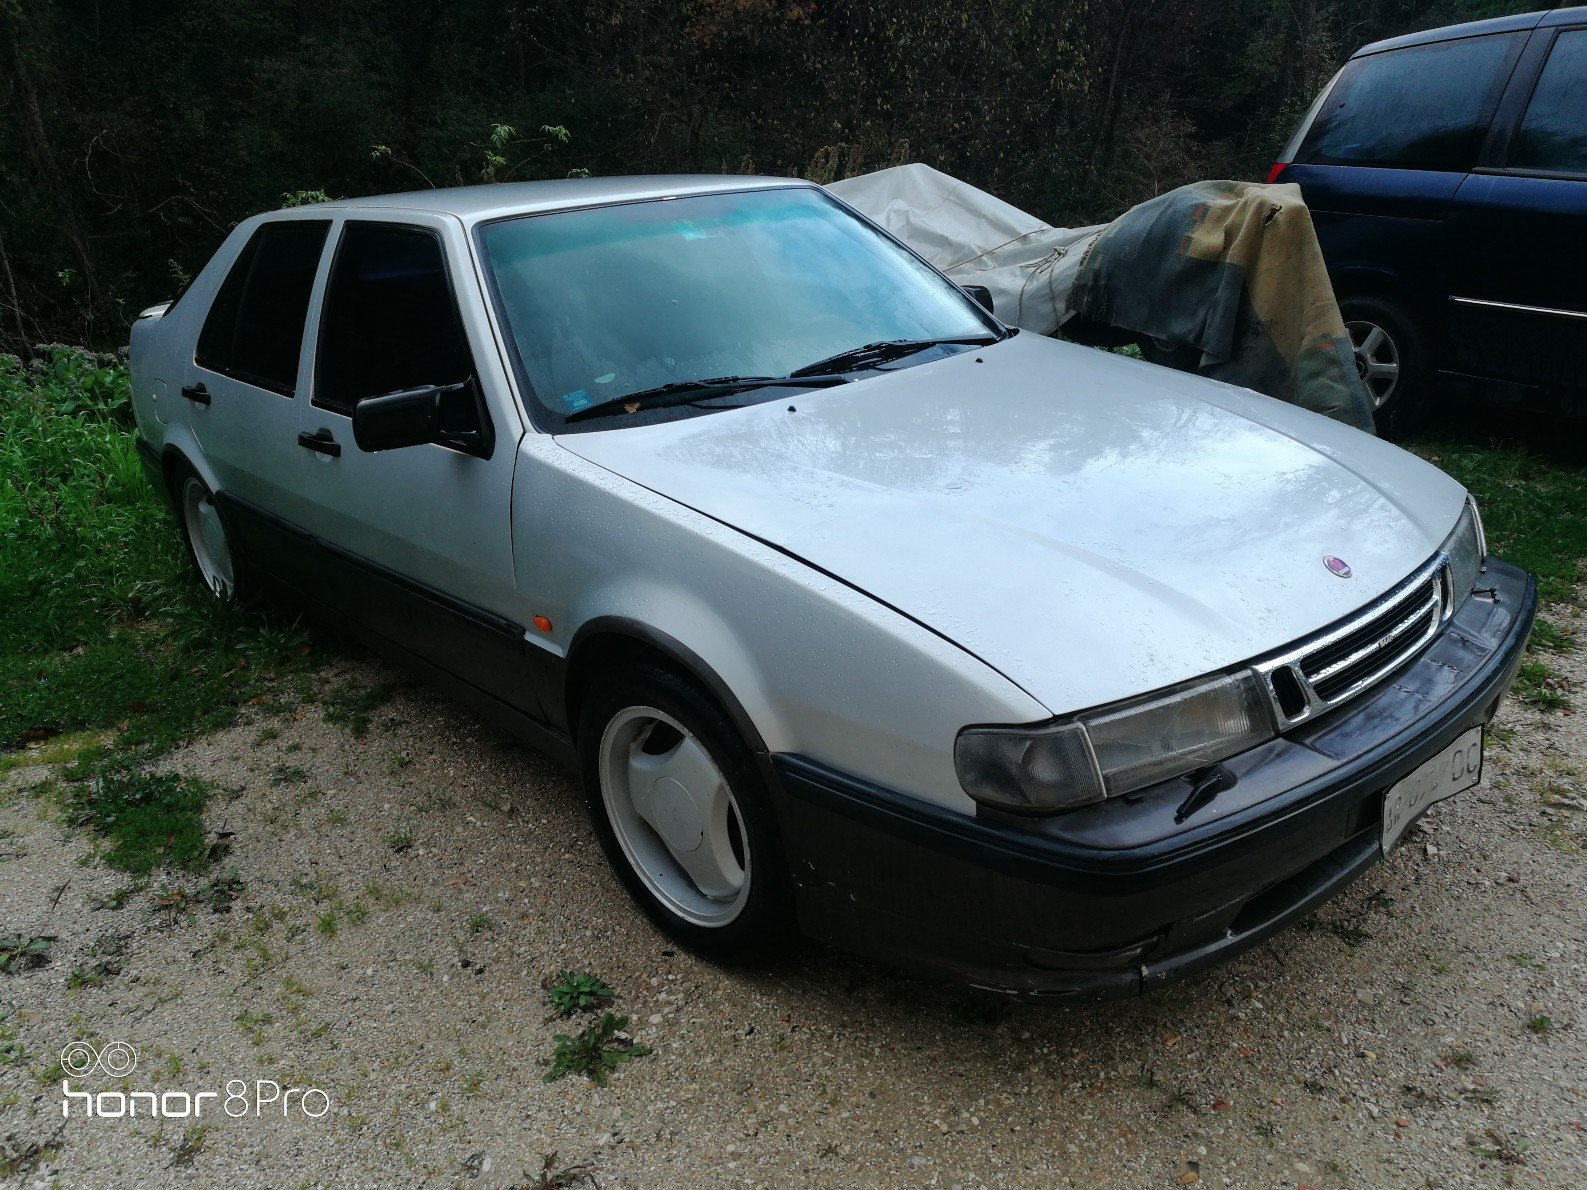 1997 Saab 9000 turbo 16 cse For Sale (picture 1 of 6)